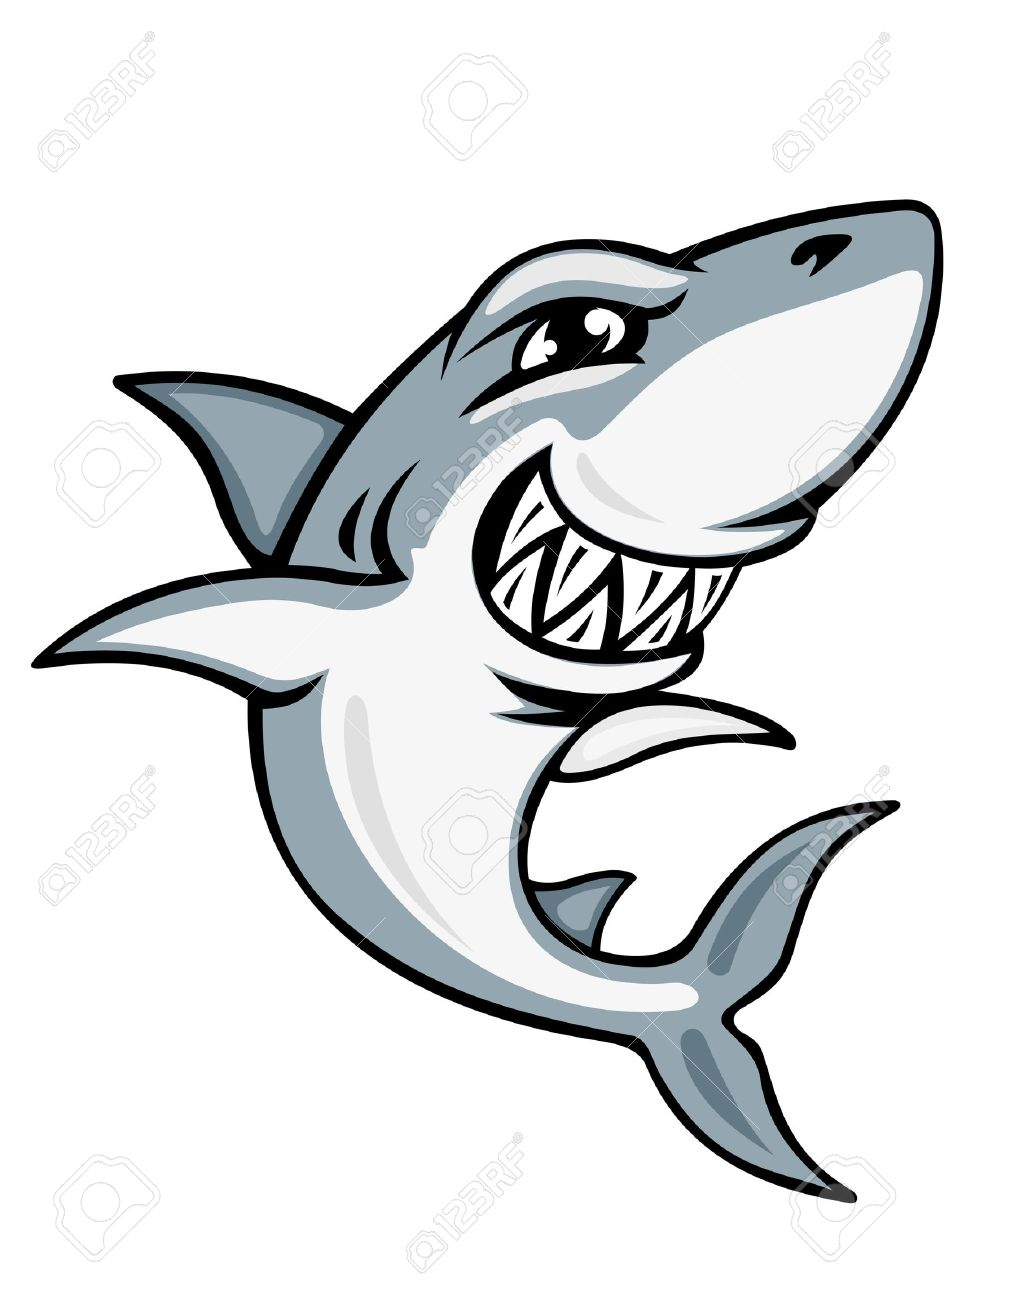 1028x1300 Cartoon Smiling Shark For Mascot And Emblem Design Royalty Free